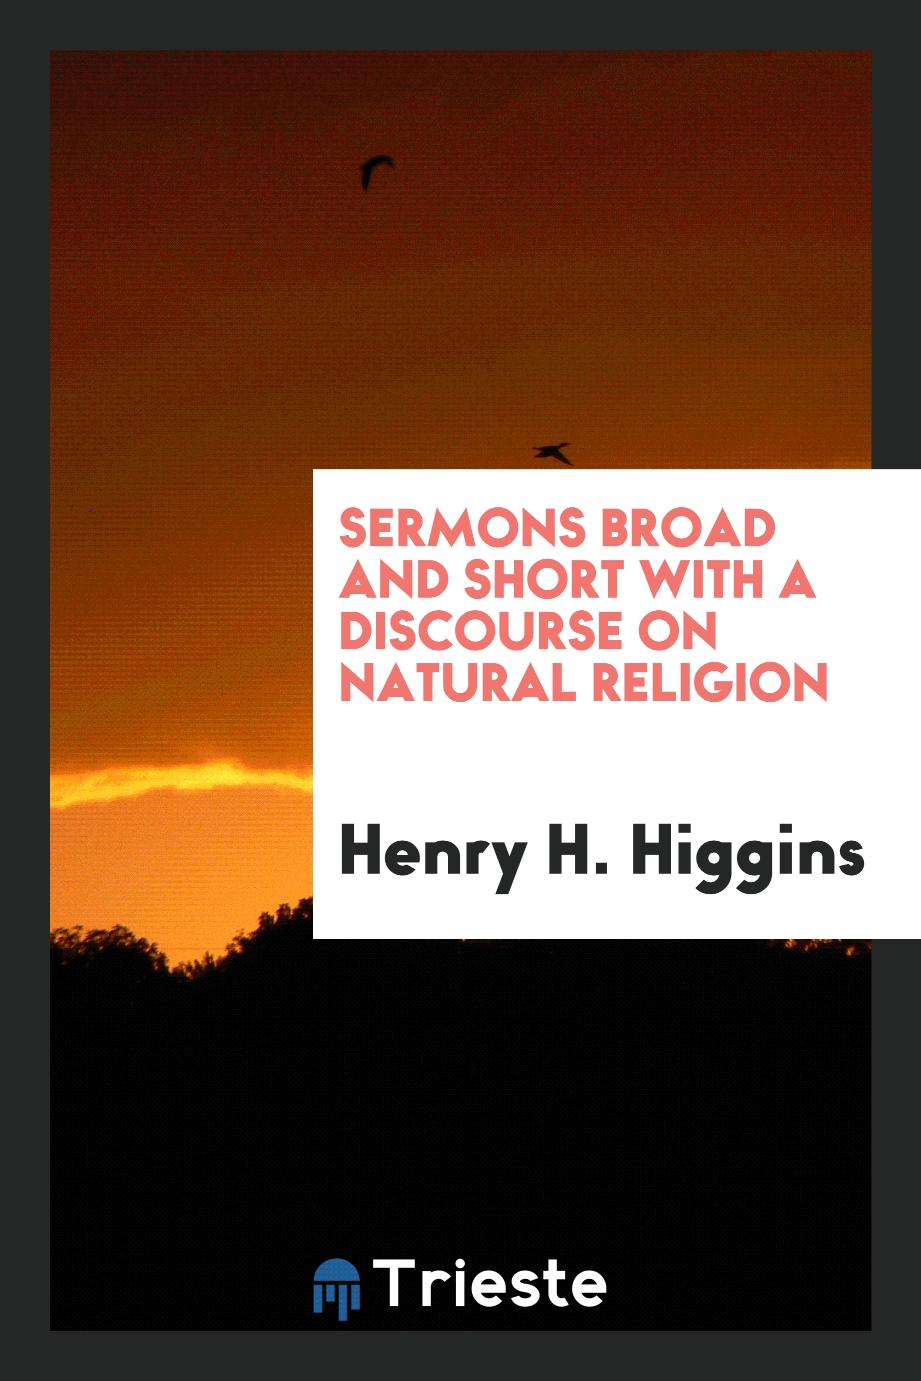 Sermons Broad and Short with a Discourse on Natural Religion